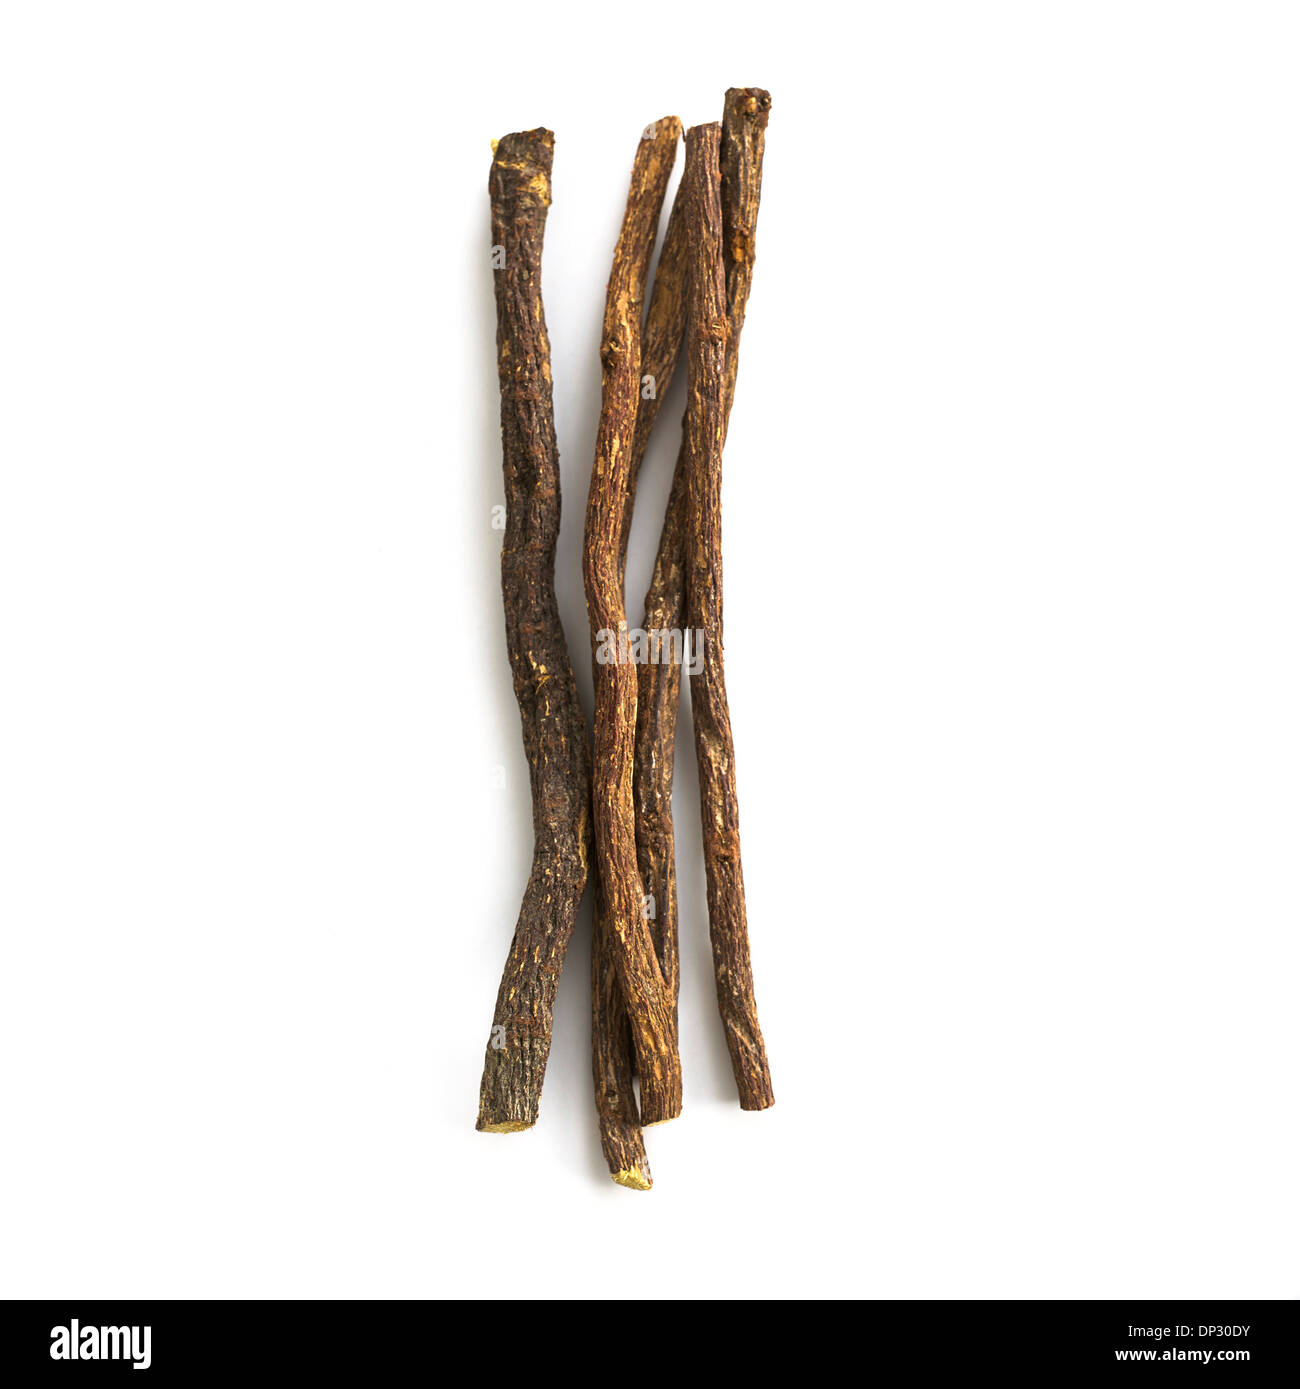 Liquorice Glycyrrhiza glabra root Stock Photo